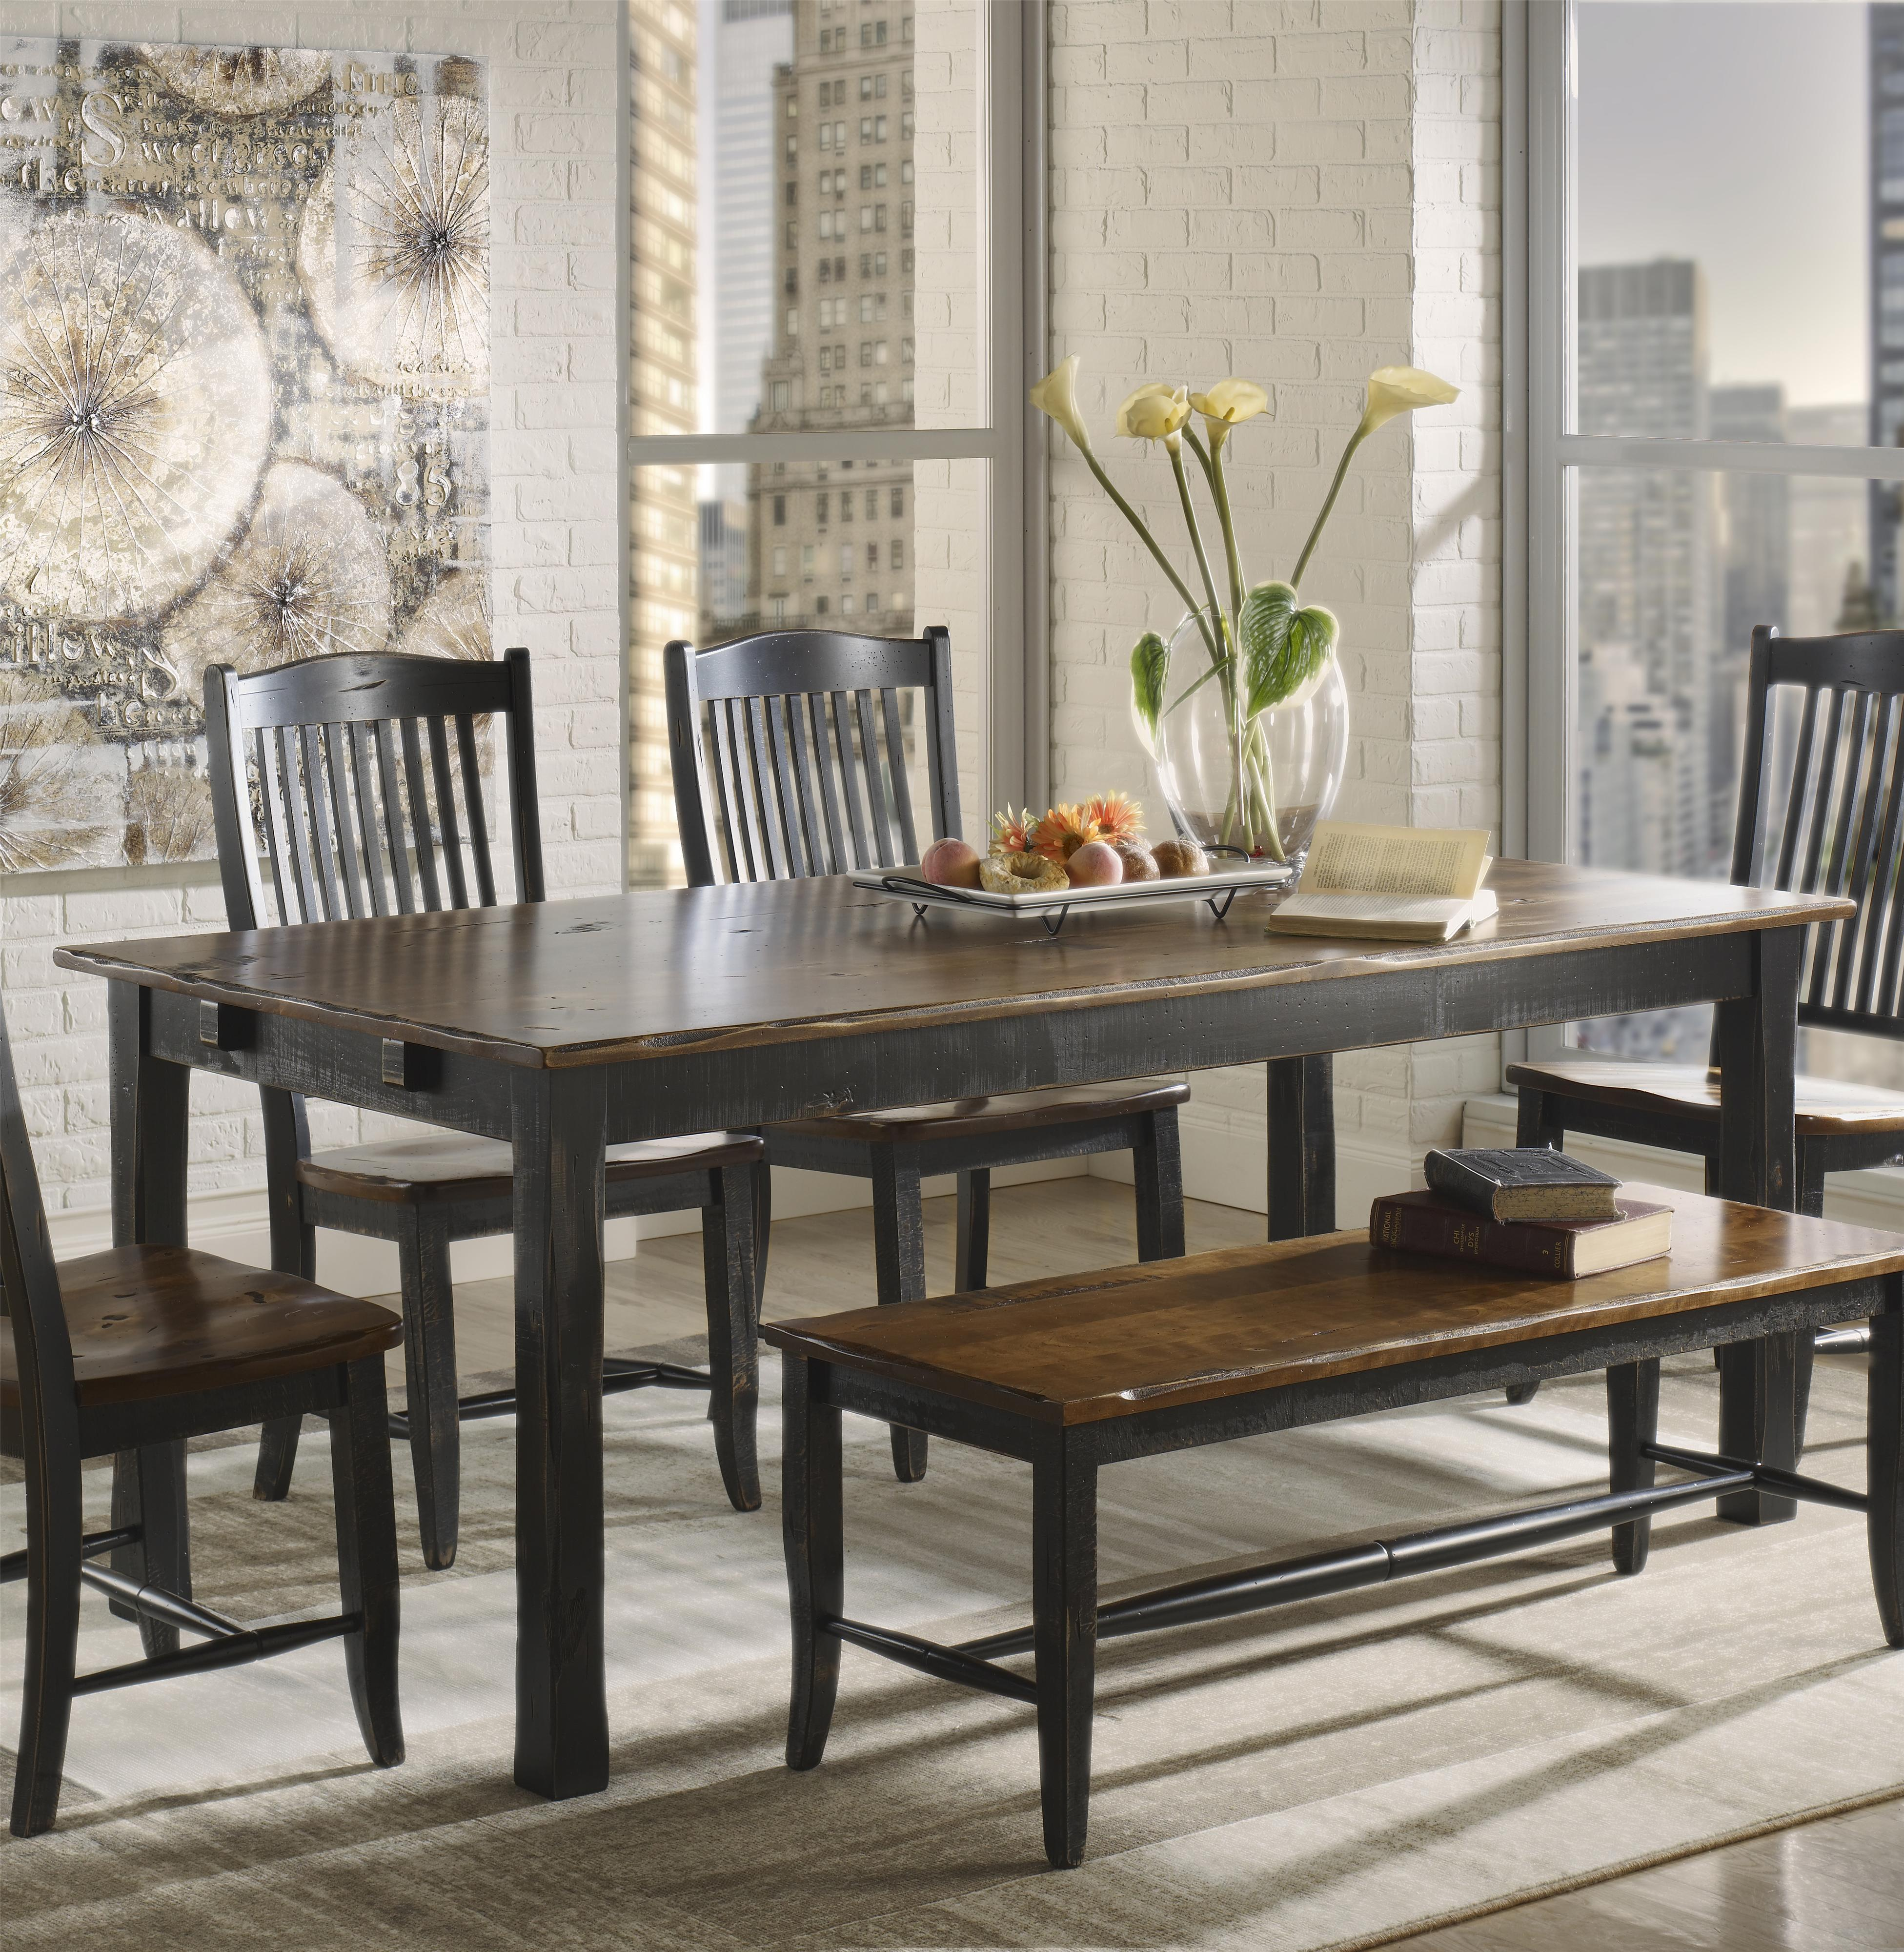 Champlain - Custom Dining <b>Customizable</b> Rectangular Table  by Canadel at Dinette Depot